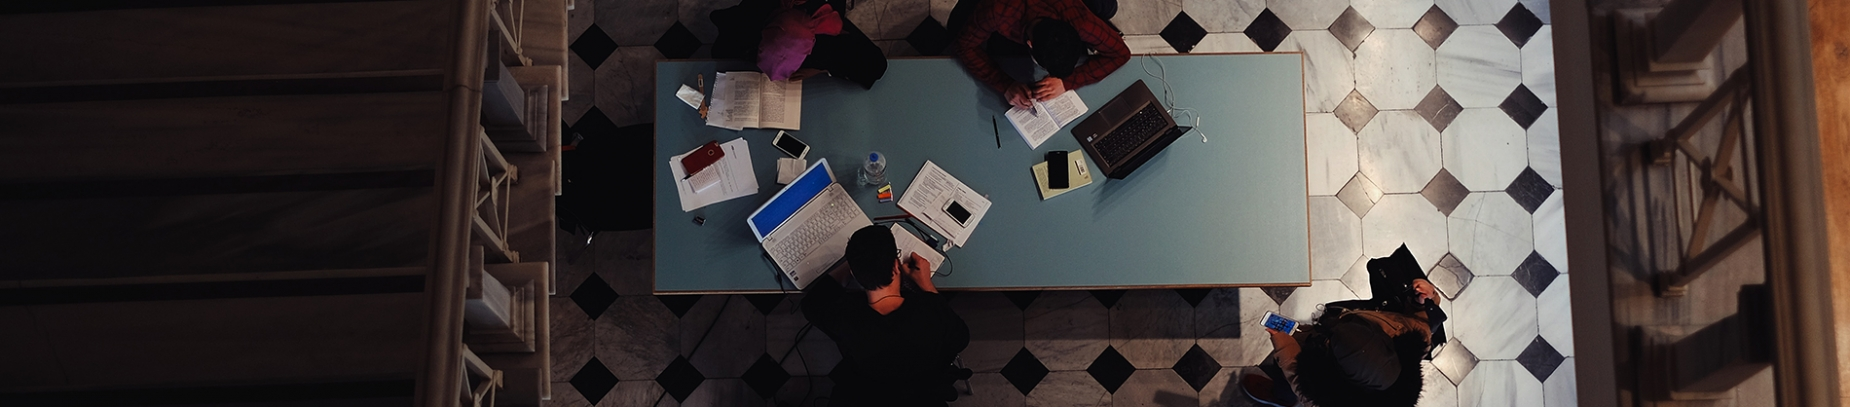 A group of people studying around a table